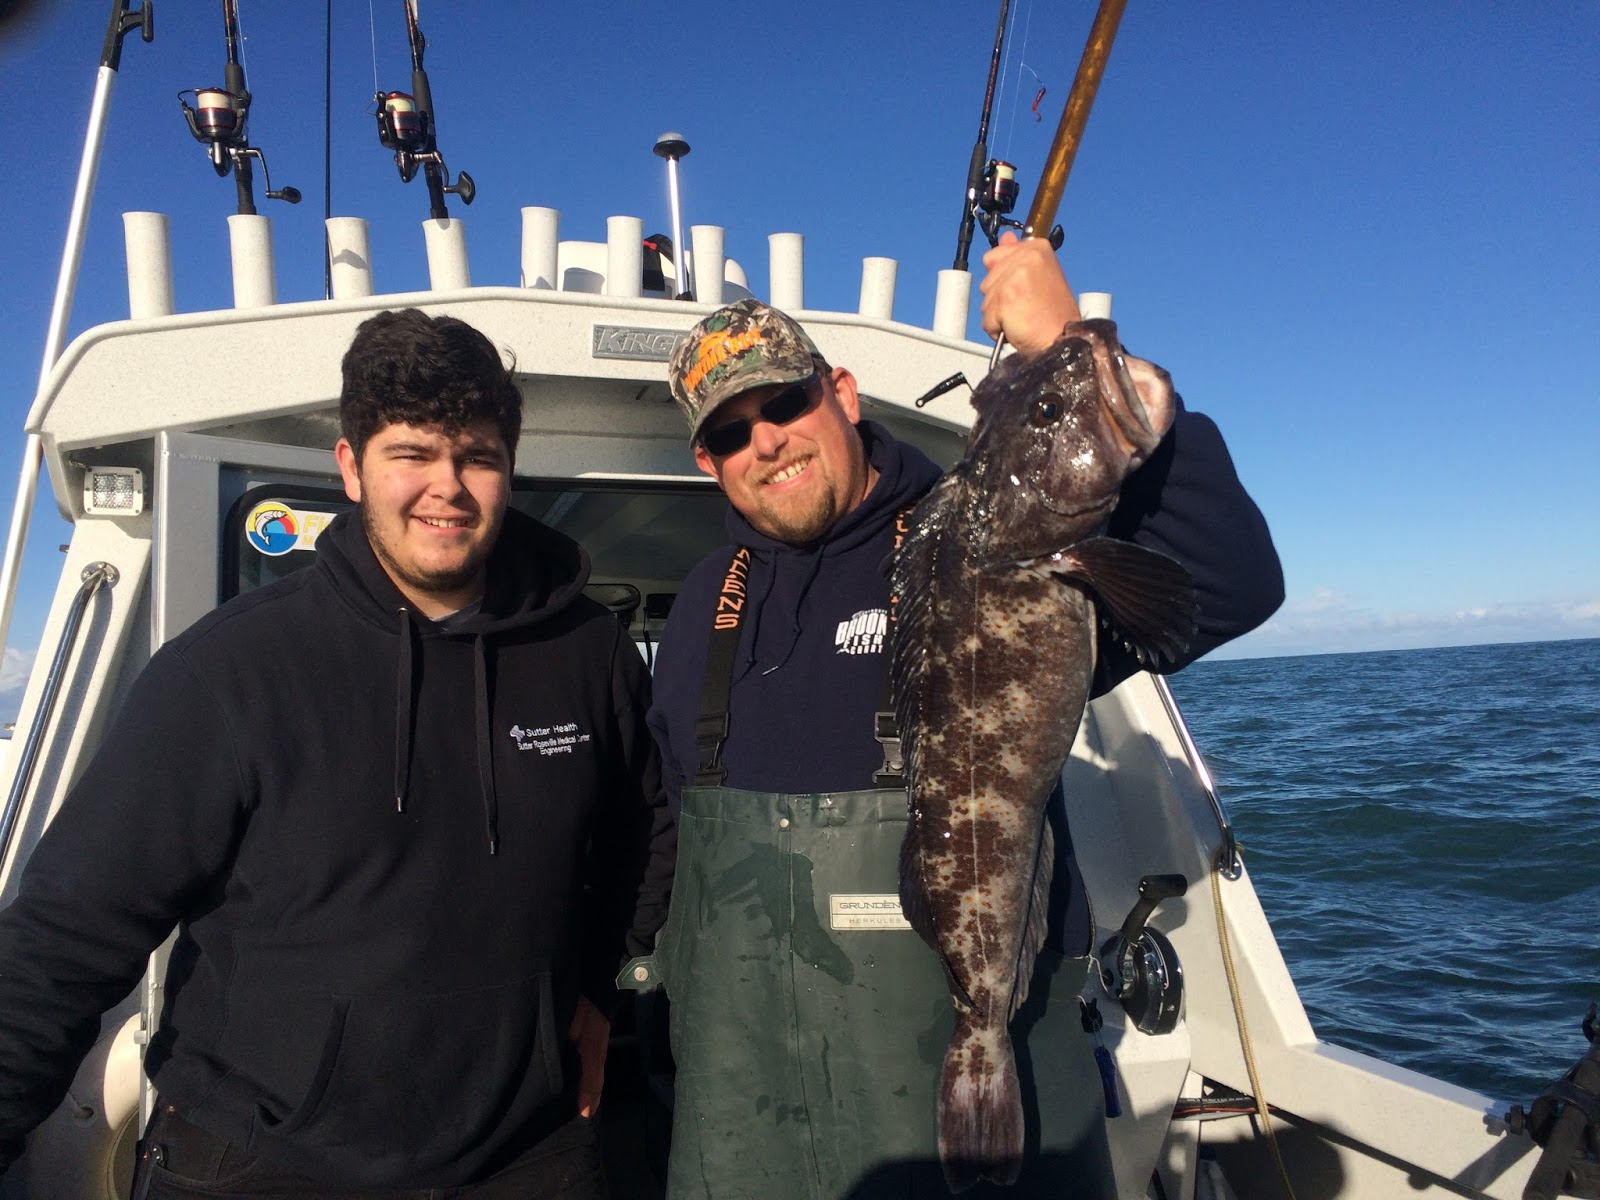 Brookings oregon fishing charters march 2017 for Charter fishing brookings oregon